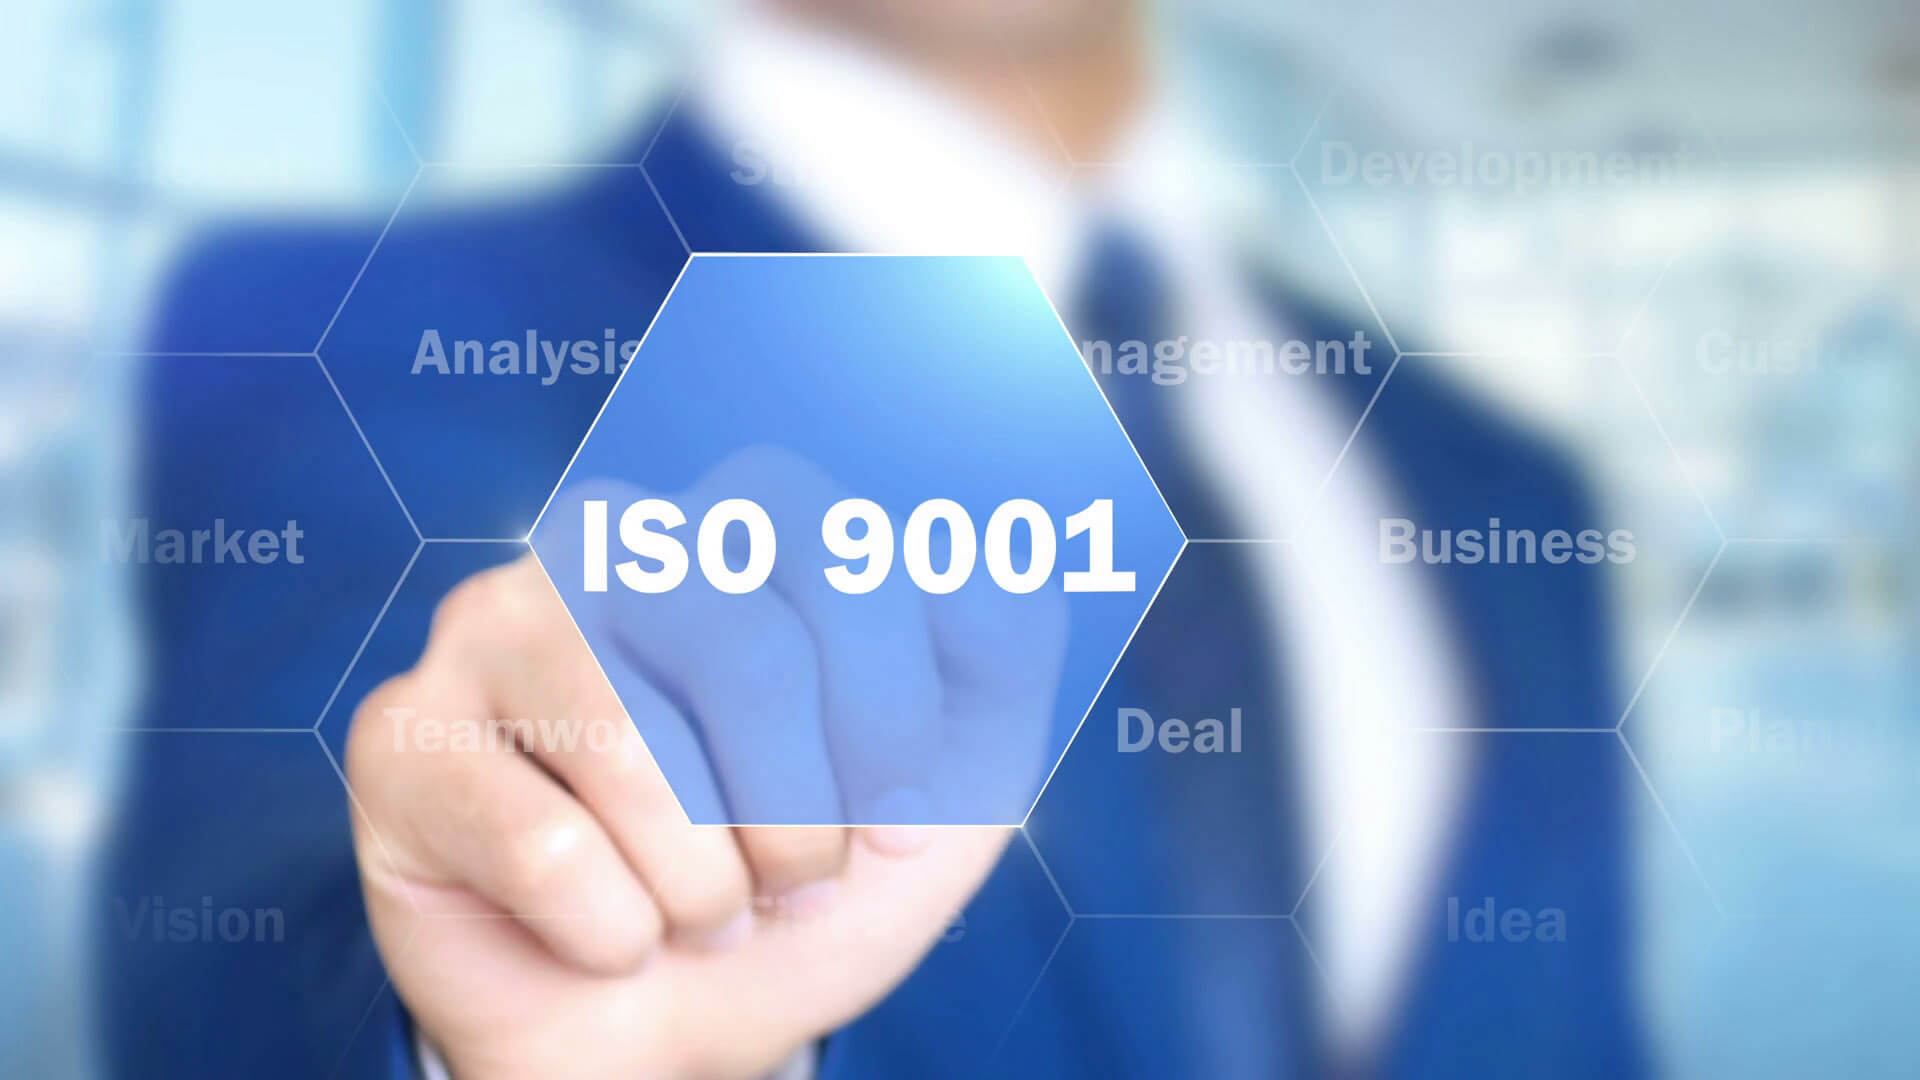 DrM's Quality System is ISO 9001 certified